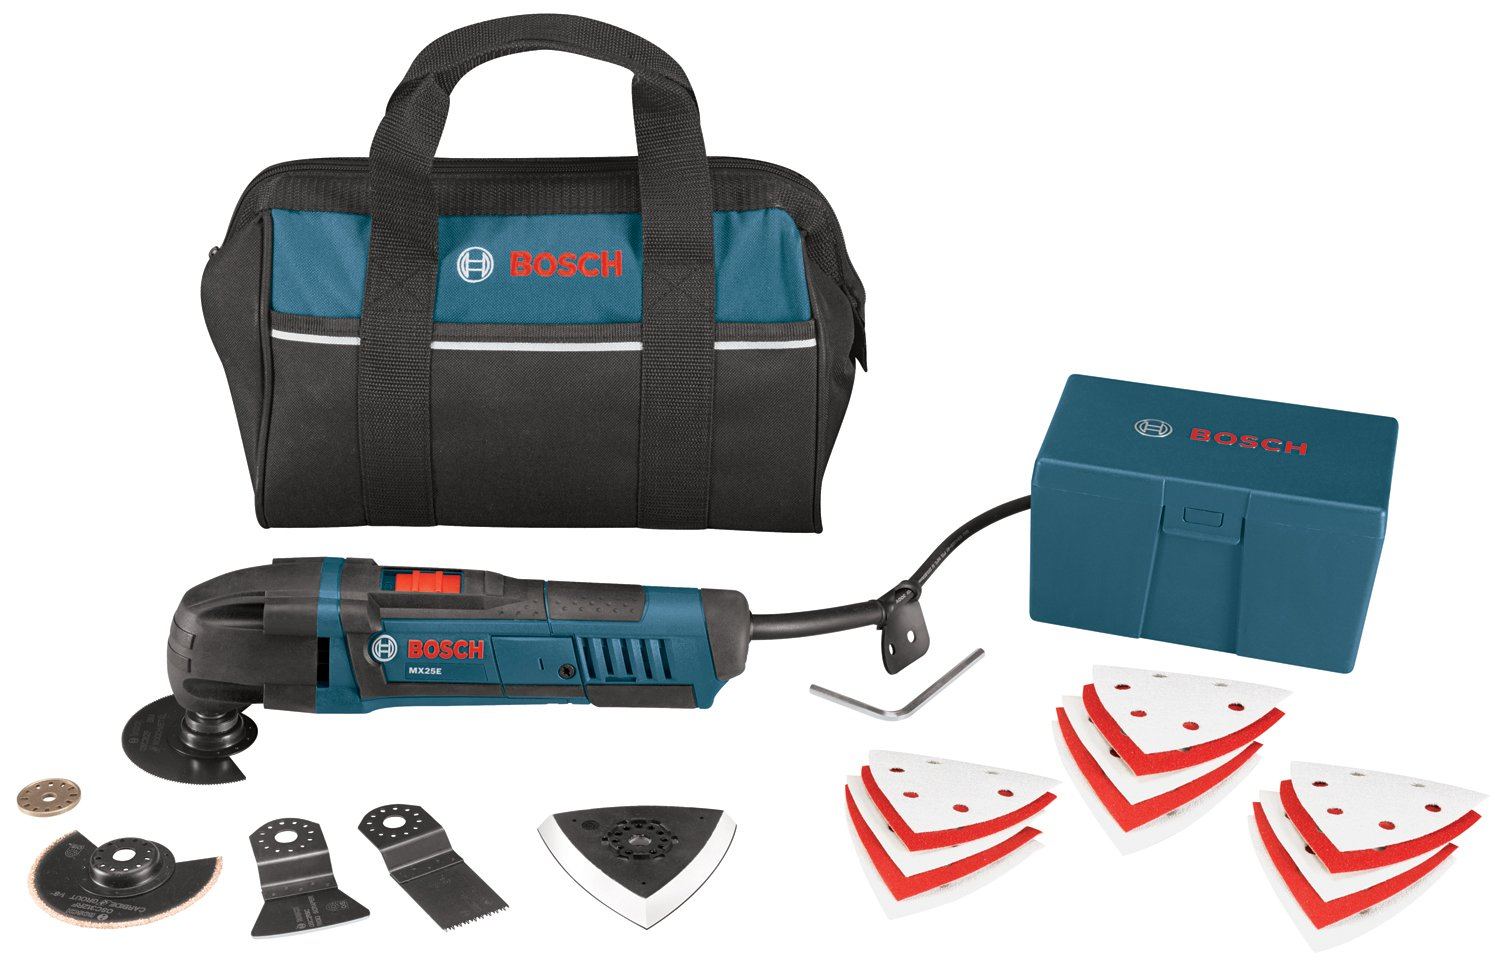 Bosch MX25EC-21 2.5-Amp Multi-X Oscillating Tool Kit $97.00